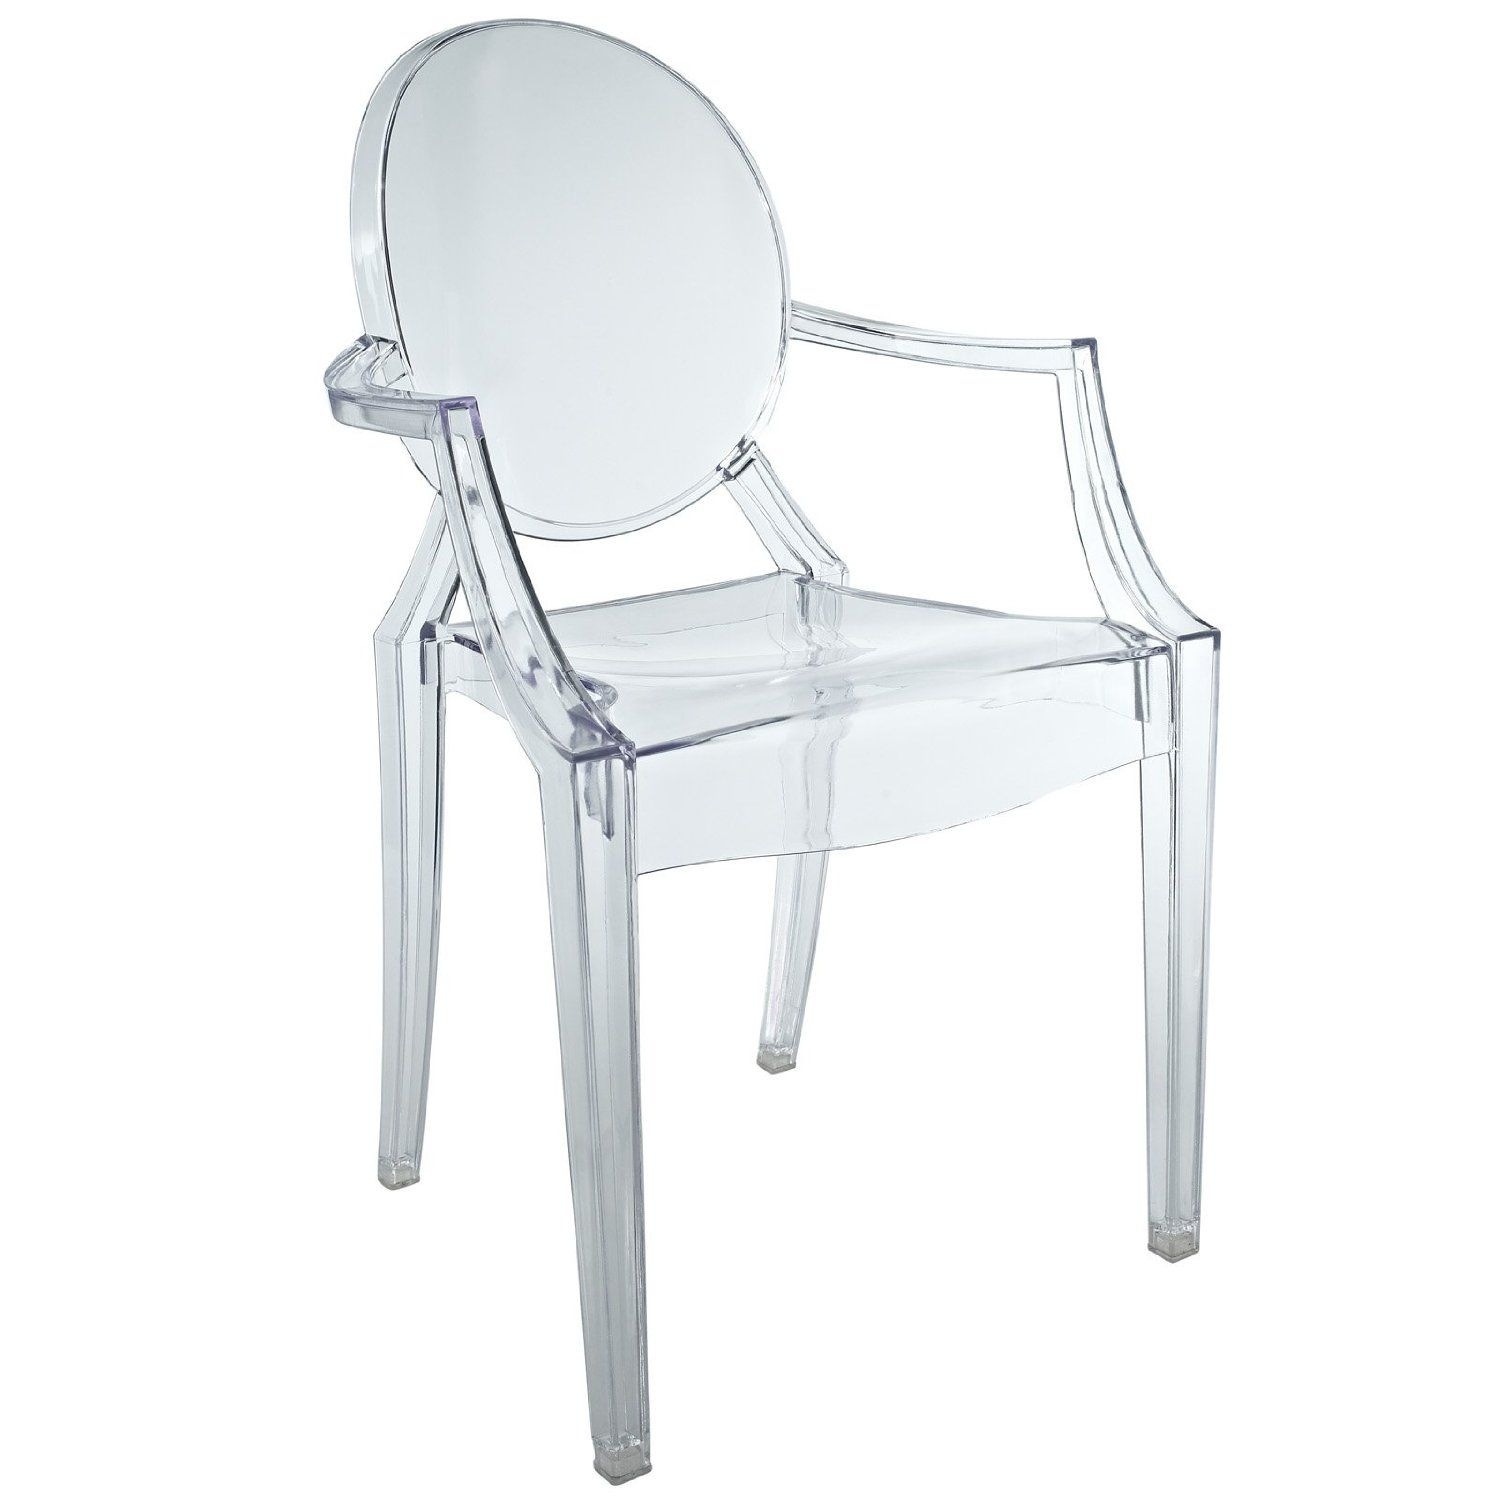 amazoncom lexmod philippe starck style mini louis ghost chair in  - amazoncom lexmod philippe starck style mini louis ghost chair in clearhome